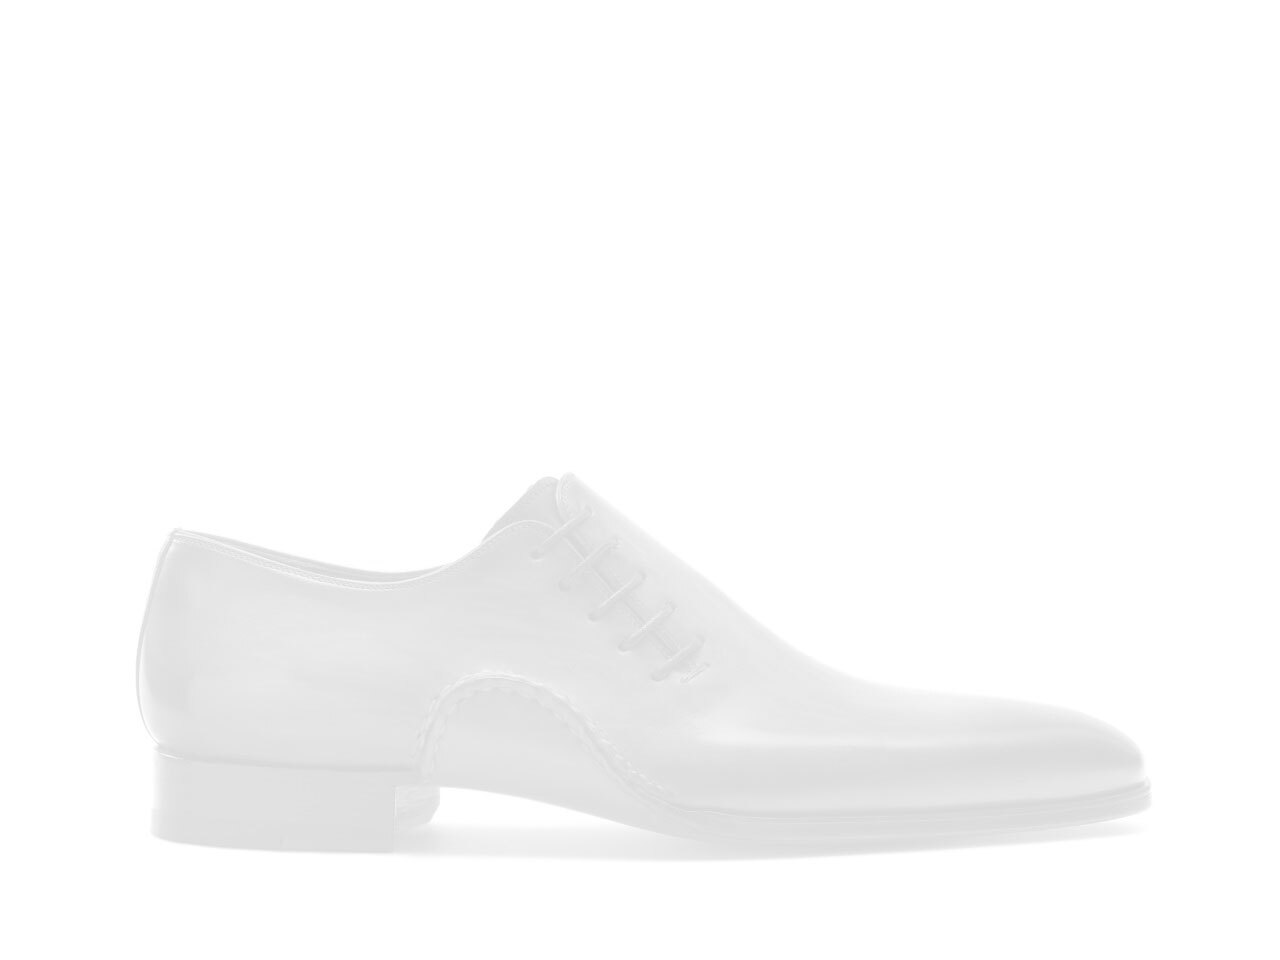 Side view of the Magnanni Echo Lo II White and Green Men's Sneakers